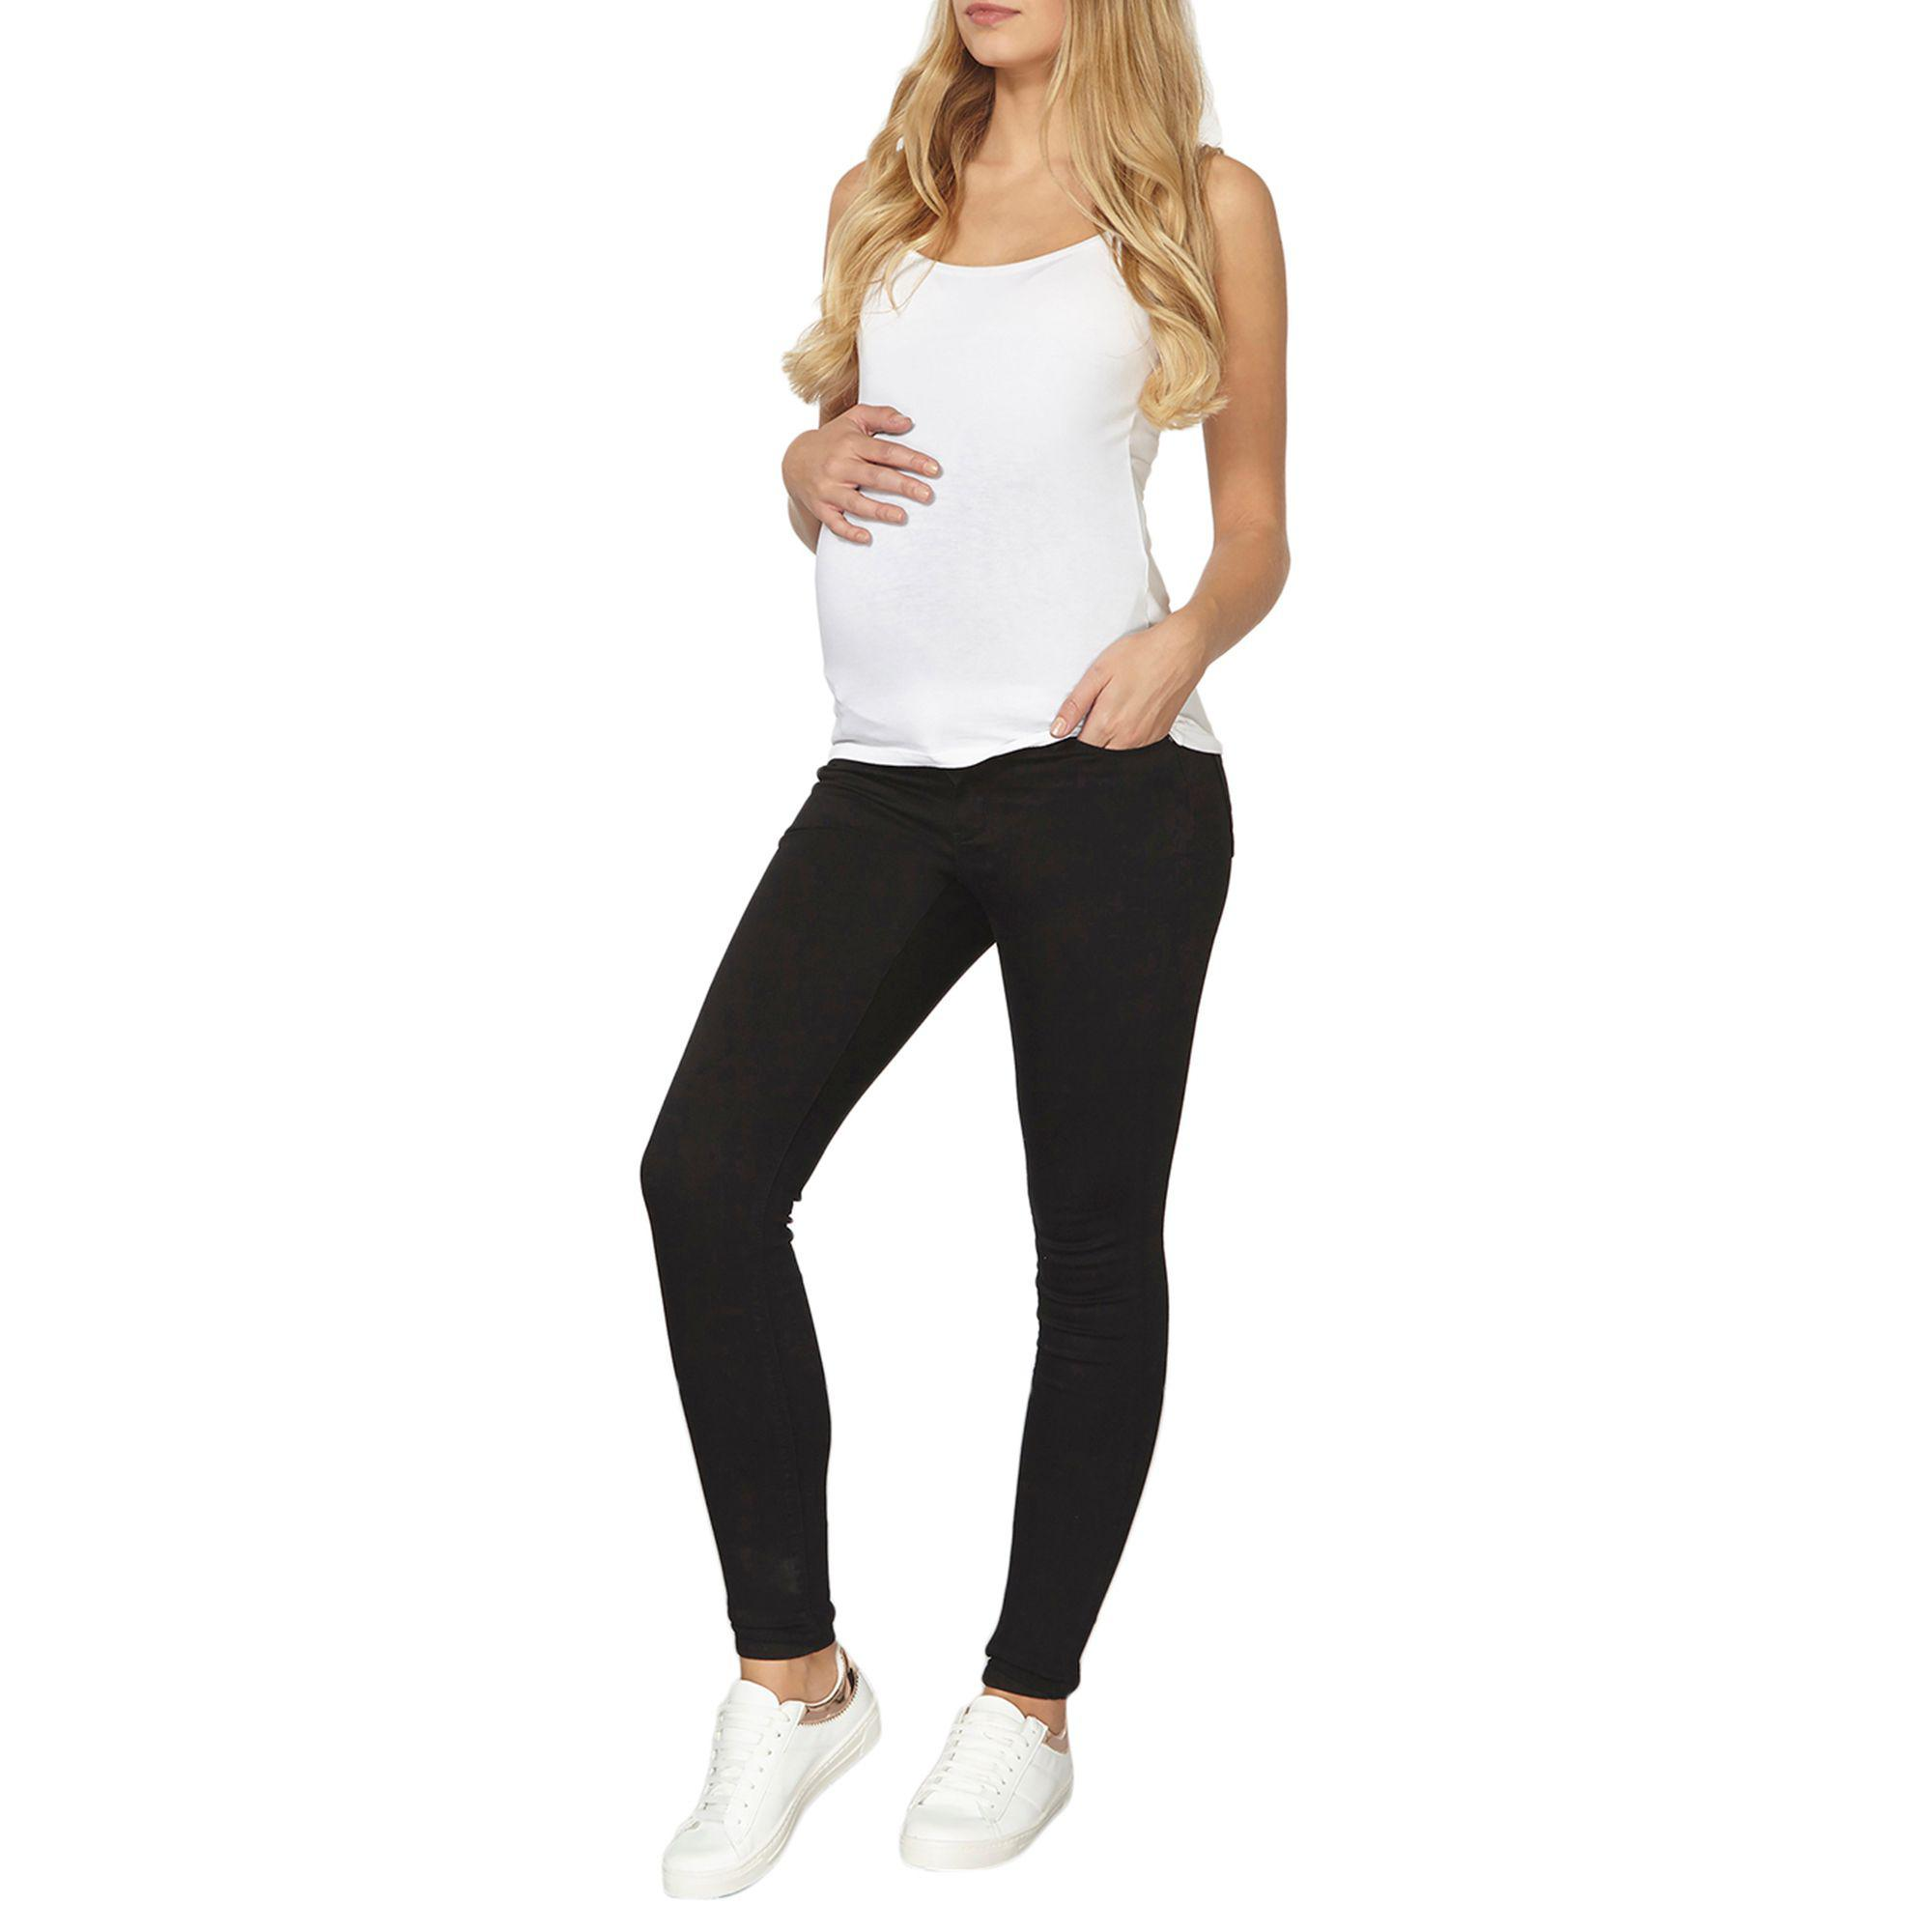 f1aed1d614570 Dorothy Perkins Maternity Forever Fit Black Jeans in Black - Lyst